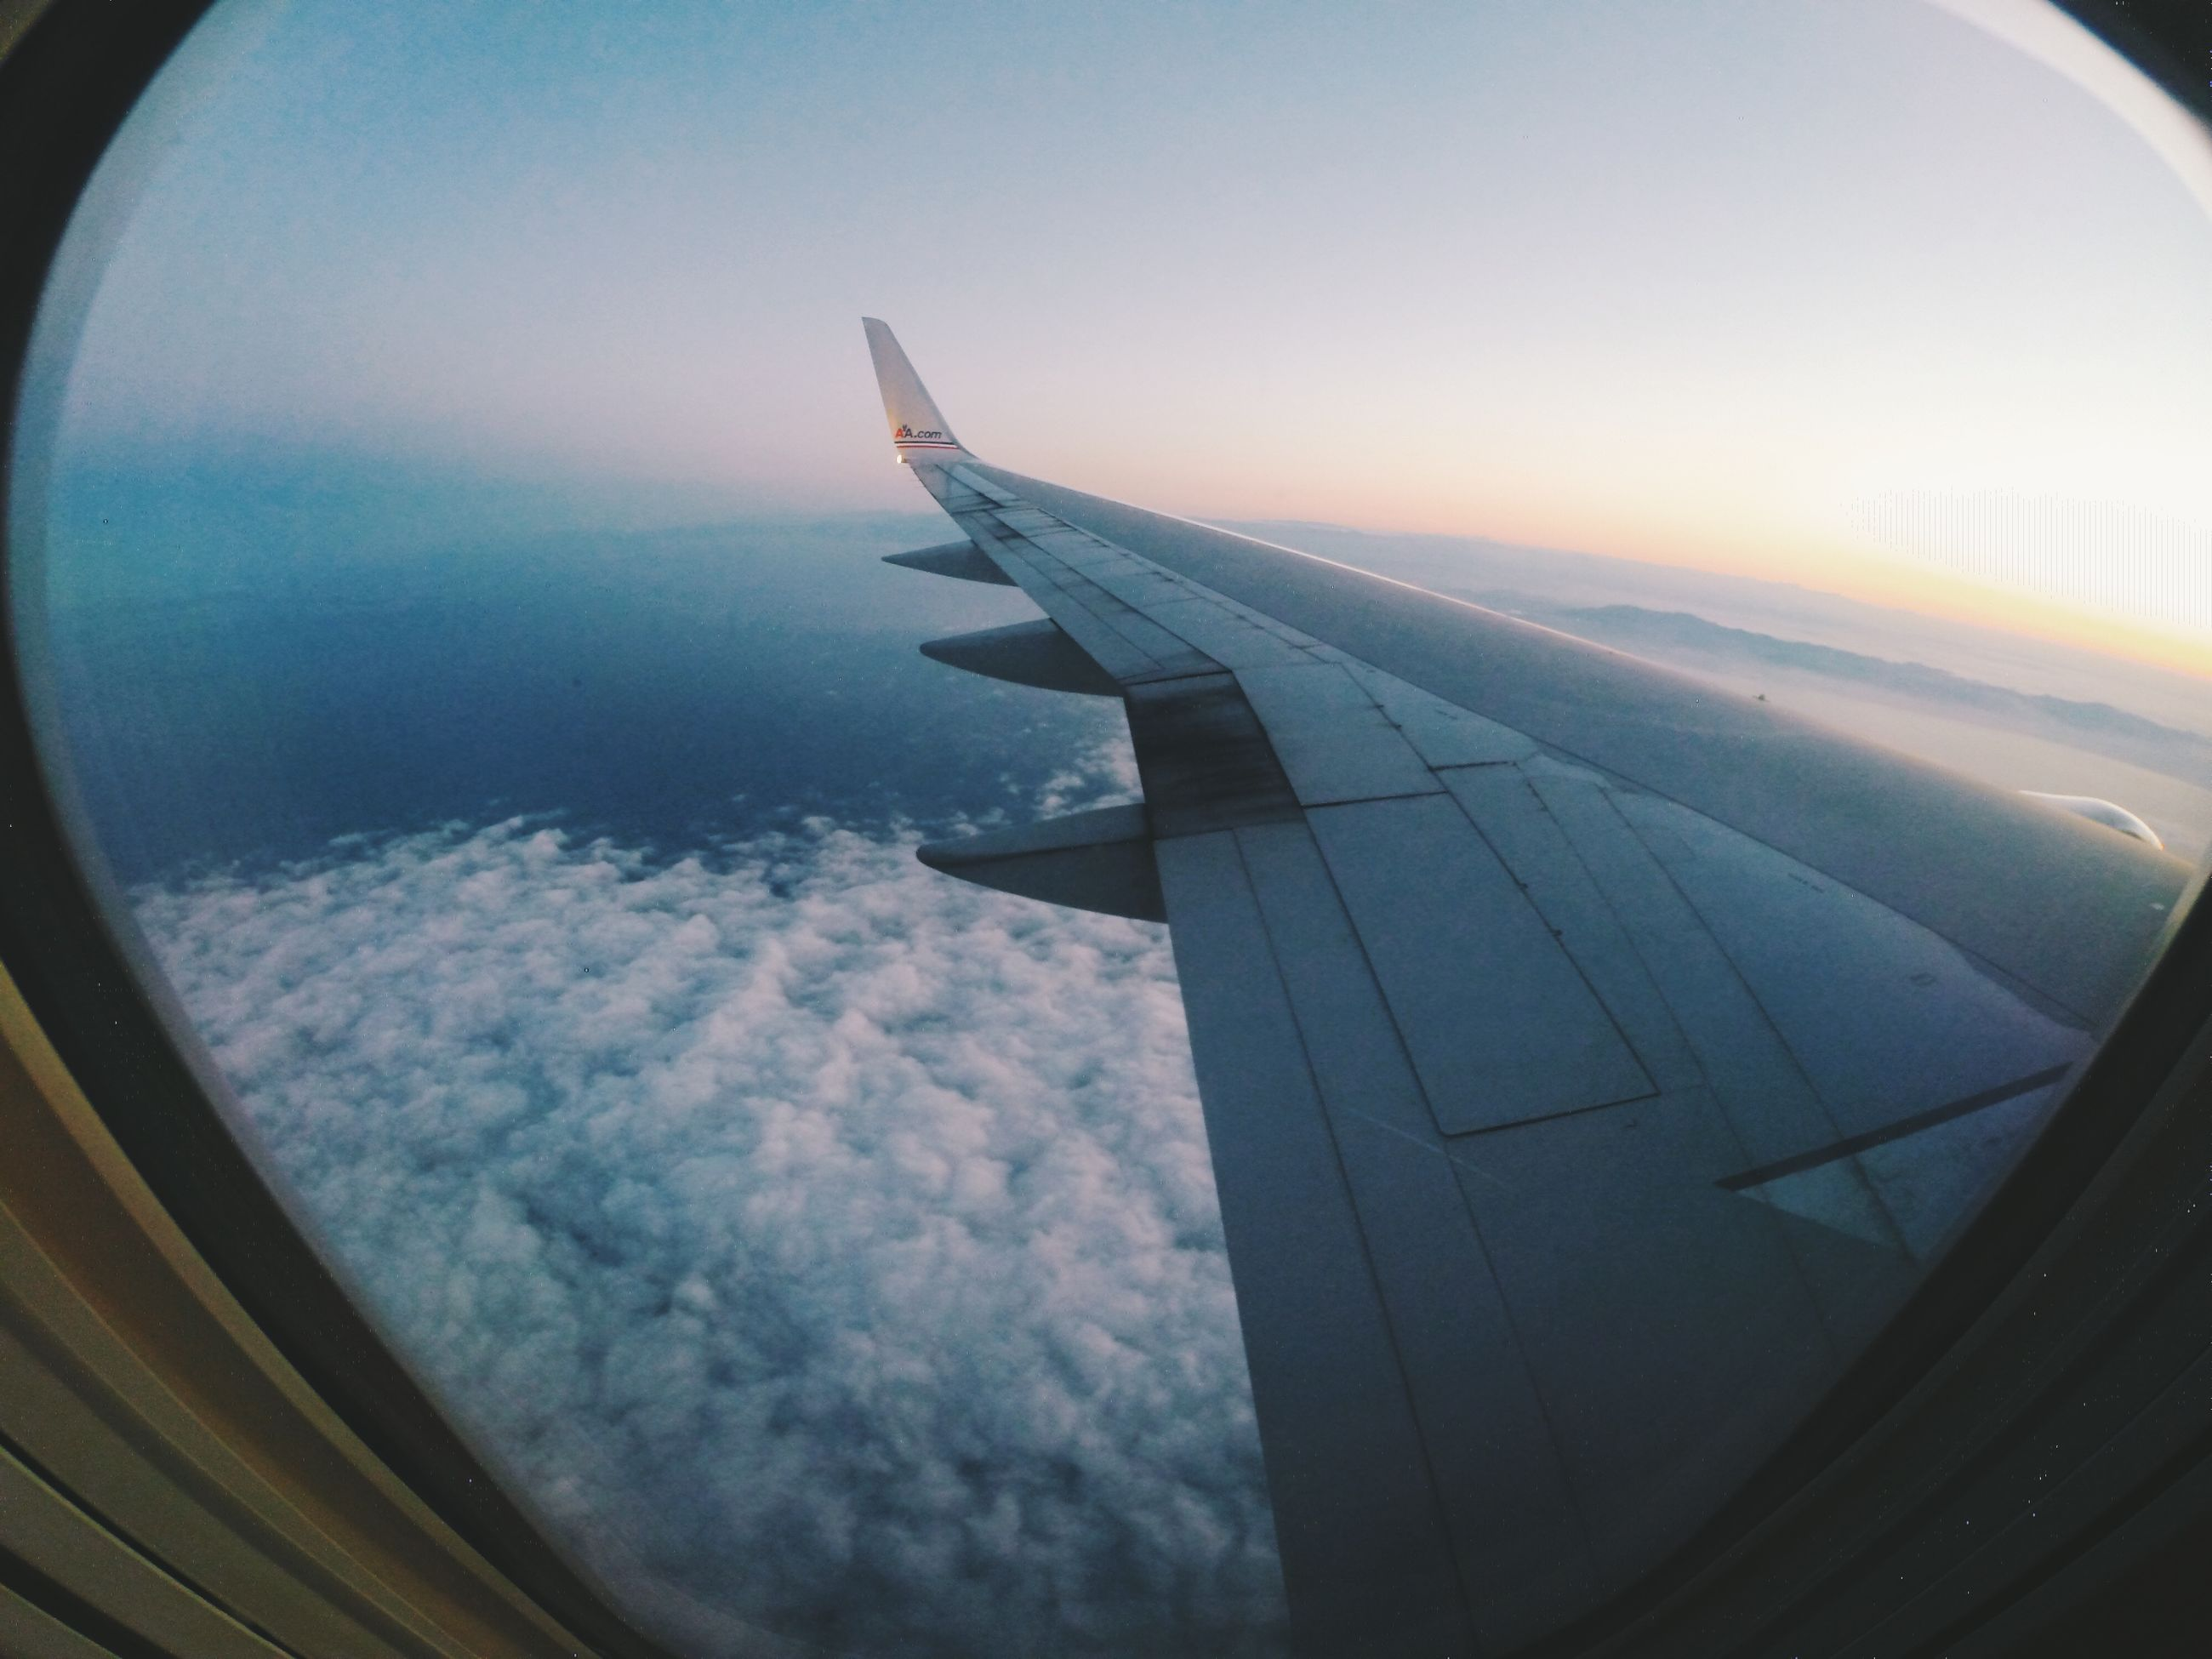 airplane, aircraft wing, transportation, air vehicle, flying, mode of transport, part of, cropped, sky, aerial view, travel, mid-air, public transportation, journey, cloud - sky, on the move, window, glass - material, vehicle interior, airplane wing